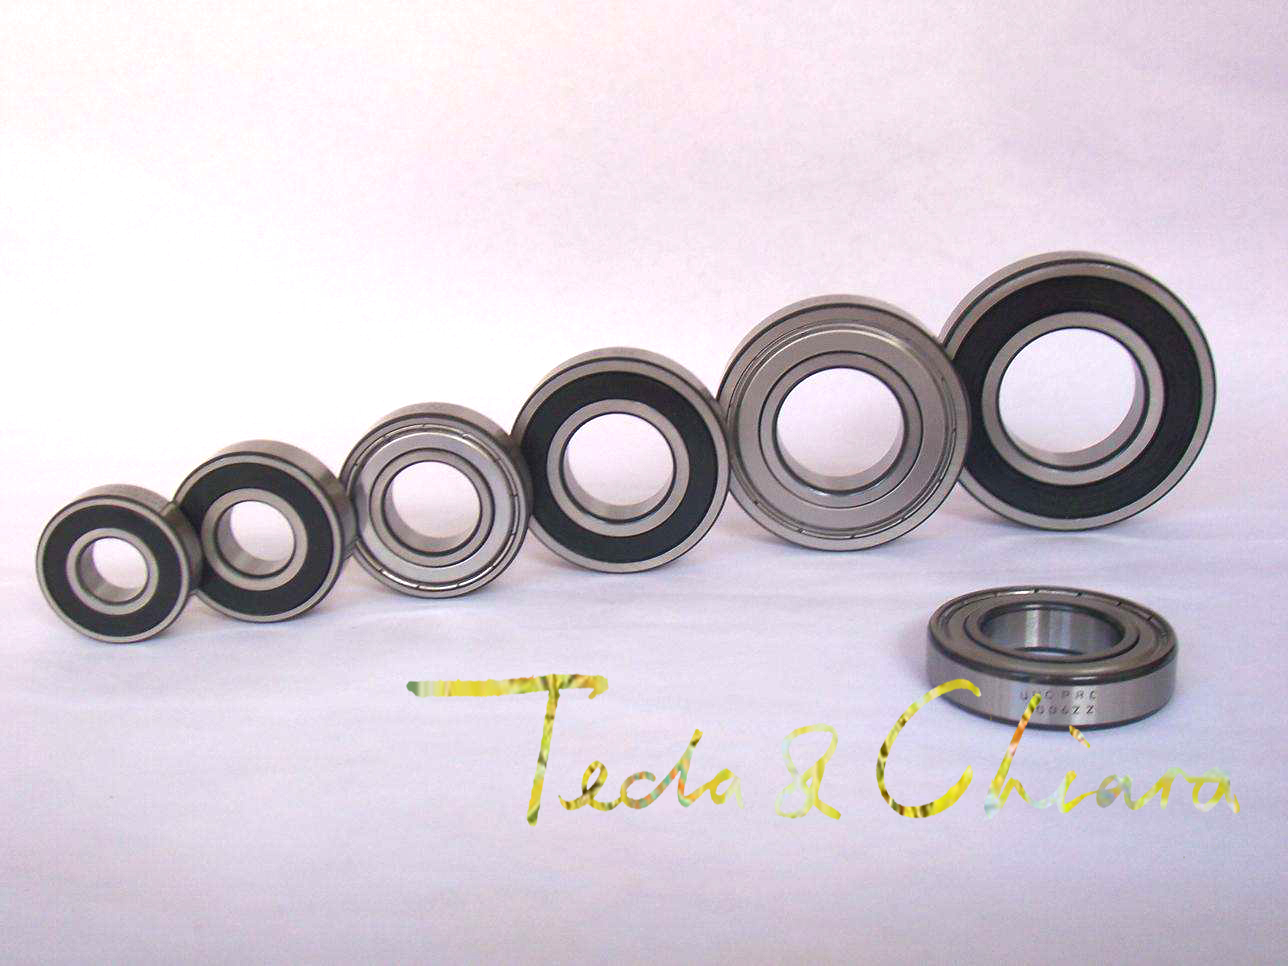 6301 6301ZZ 6301RS 6301-2Z 6301Z 6301-2RS ZZ RS RZ 2RZ Deep Groove Ball Bearings 12 x 37 x 12mm High Quality женские сапоги in heart bird 6301 2014